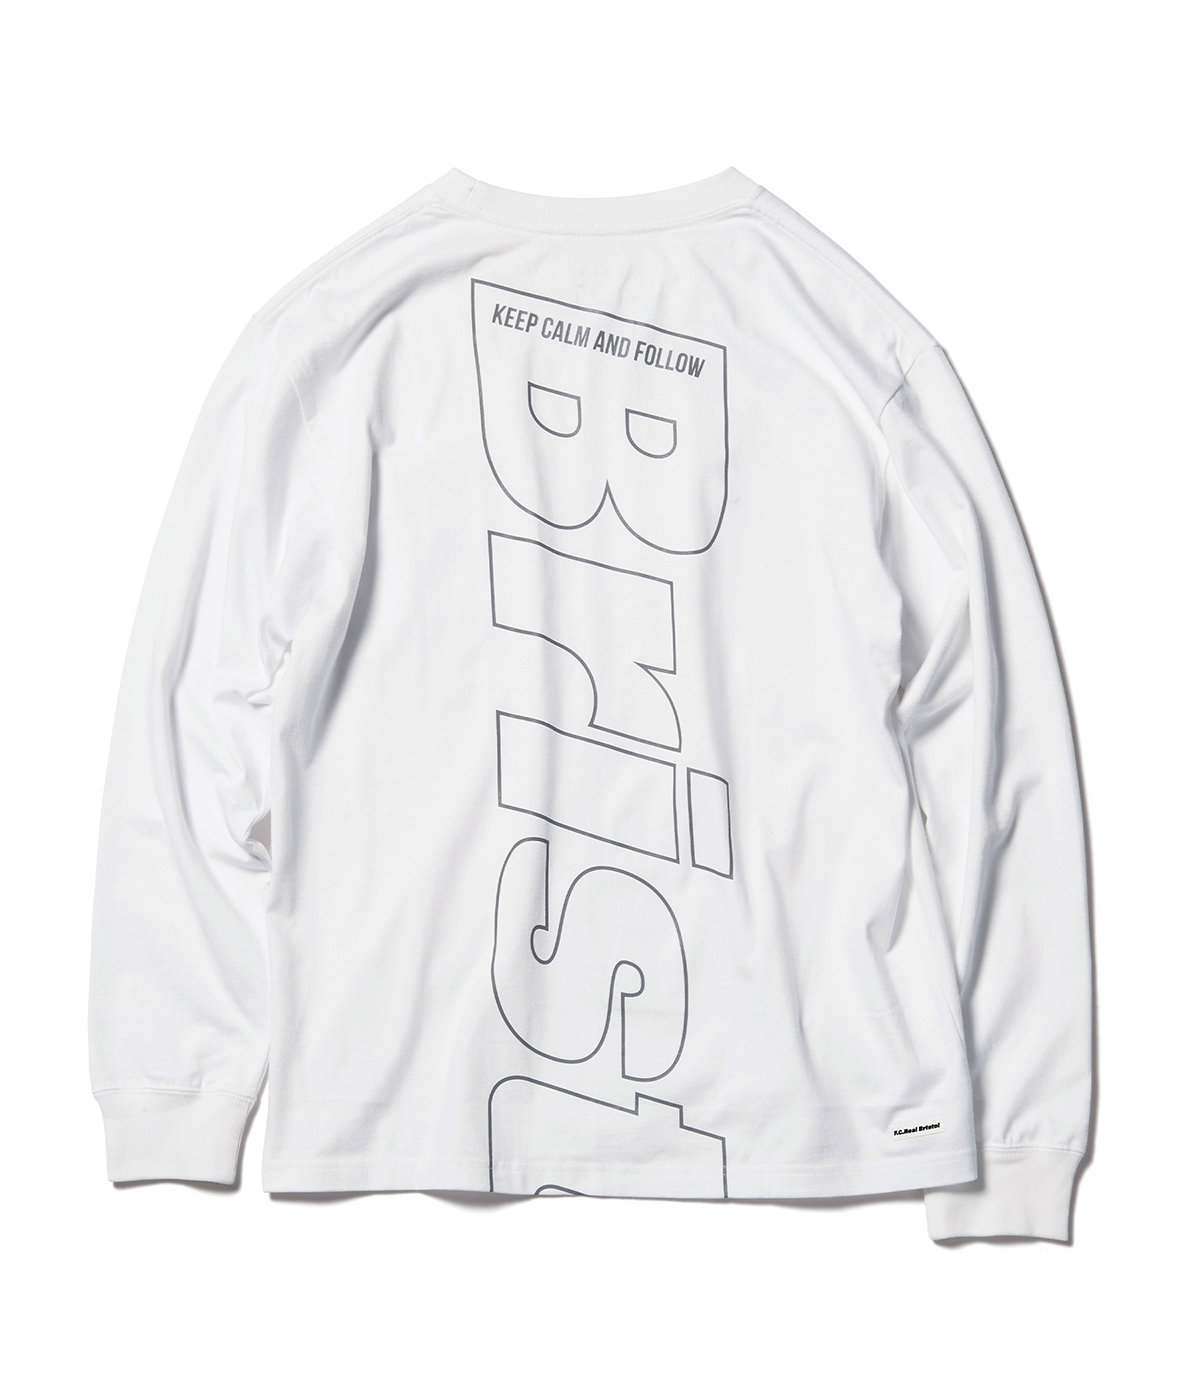 L/S REFLECTIVE BIG LOGO TEE